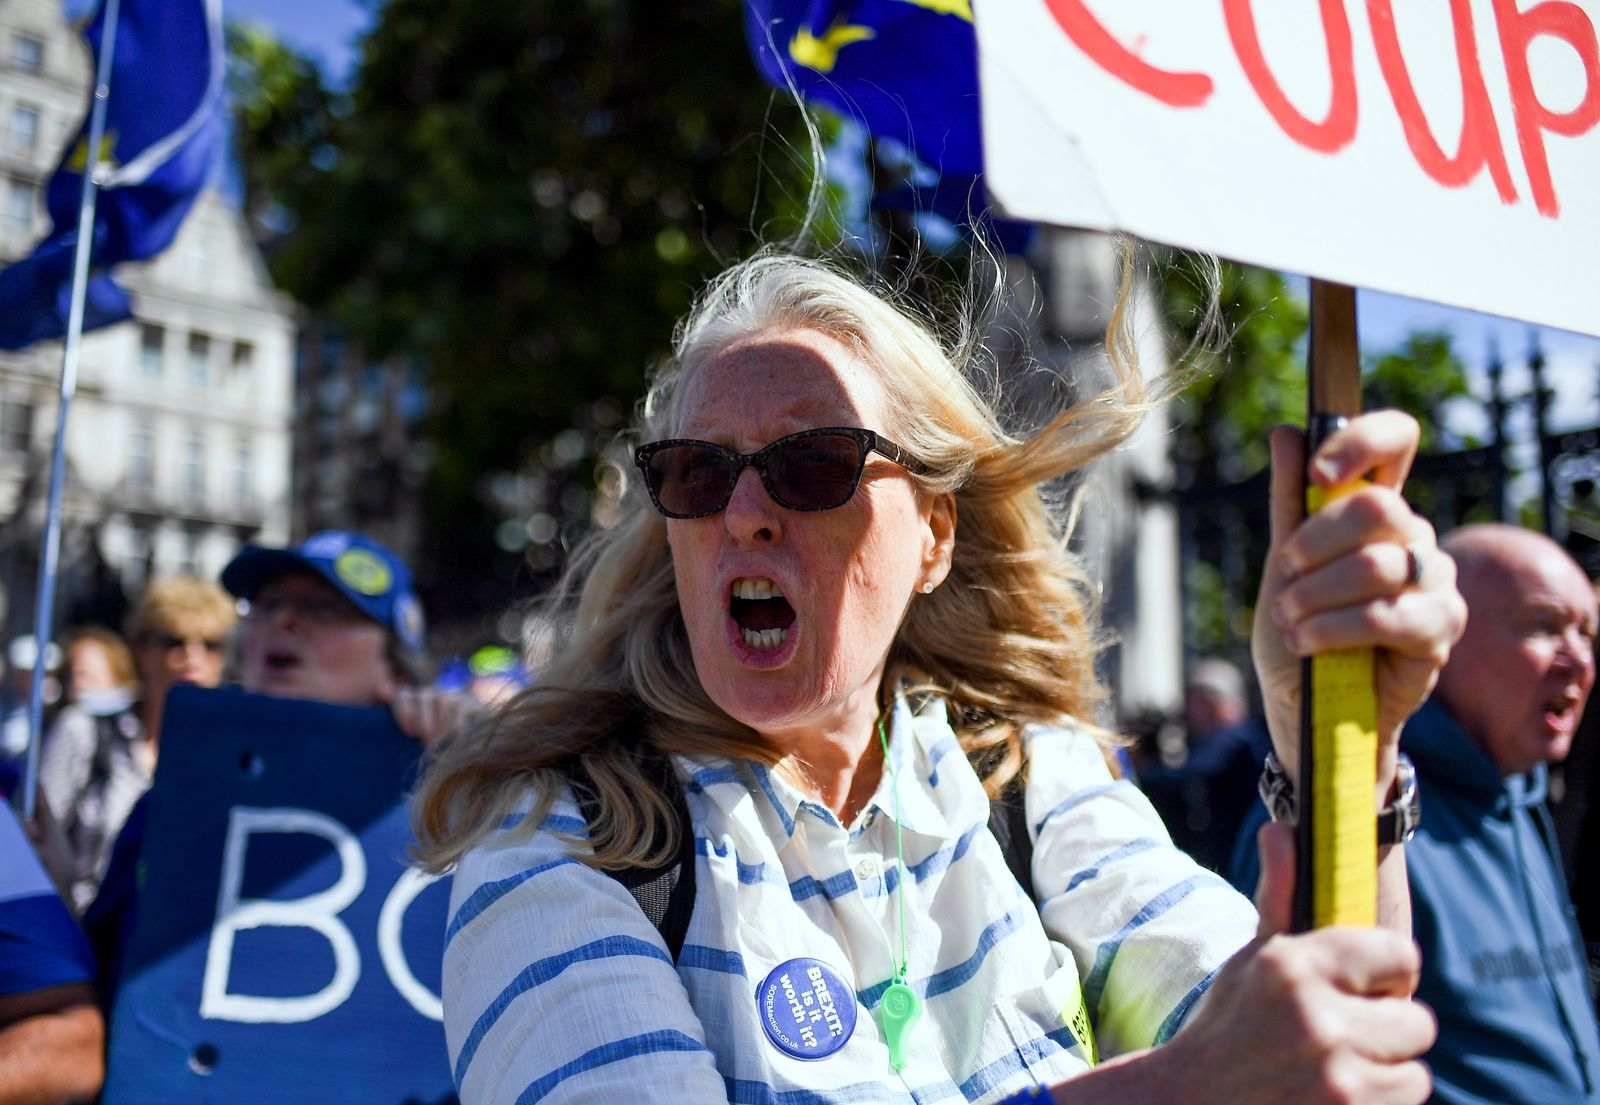 Anti-Brexit demonstrators attend a protest outside the Houses of Parliament, in London, Wednesday, Sept. 4, 2019. A Scottish court says British Prime Minister Boris Johnson's planned suspension of Parliament is lawful. It is the first of several challenges to Johnson's maneuver that gives lawmakers little time to prevent Britain from crashing out of the European Union without an agreement on Oct. 31. (AP Photo/Alberto Pezzali)